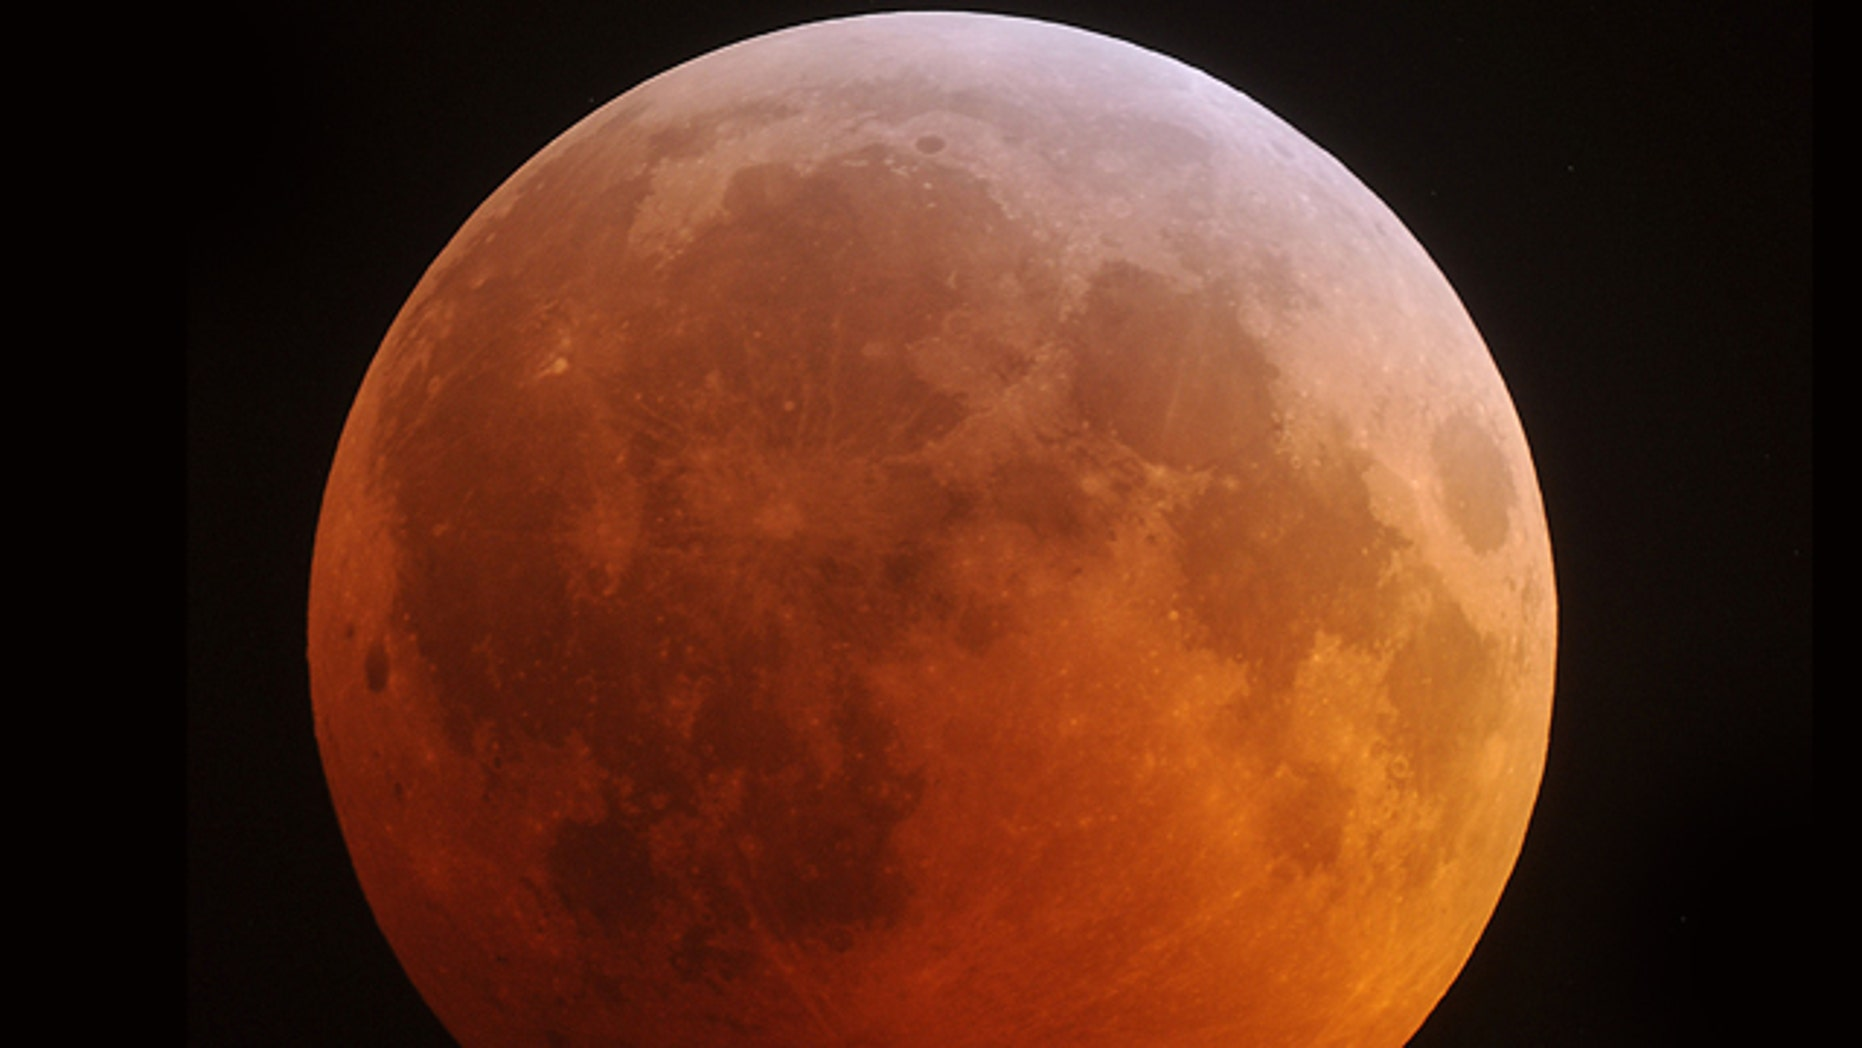 Dec. 21: The eclipsed moon glows in the predawn sky in this view from Stedman, N.C.